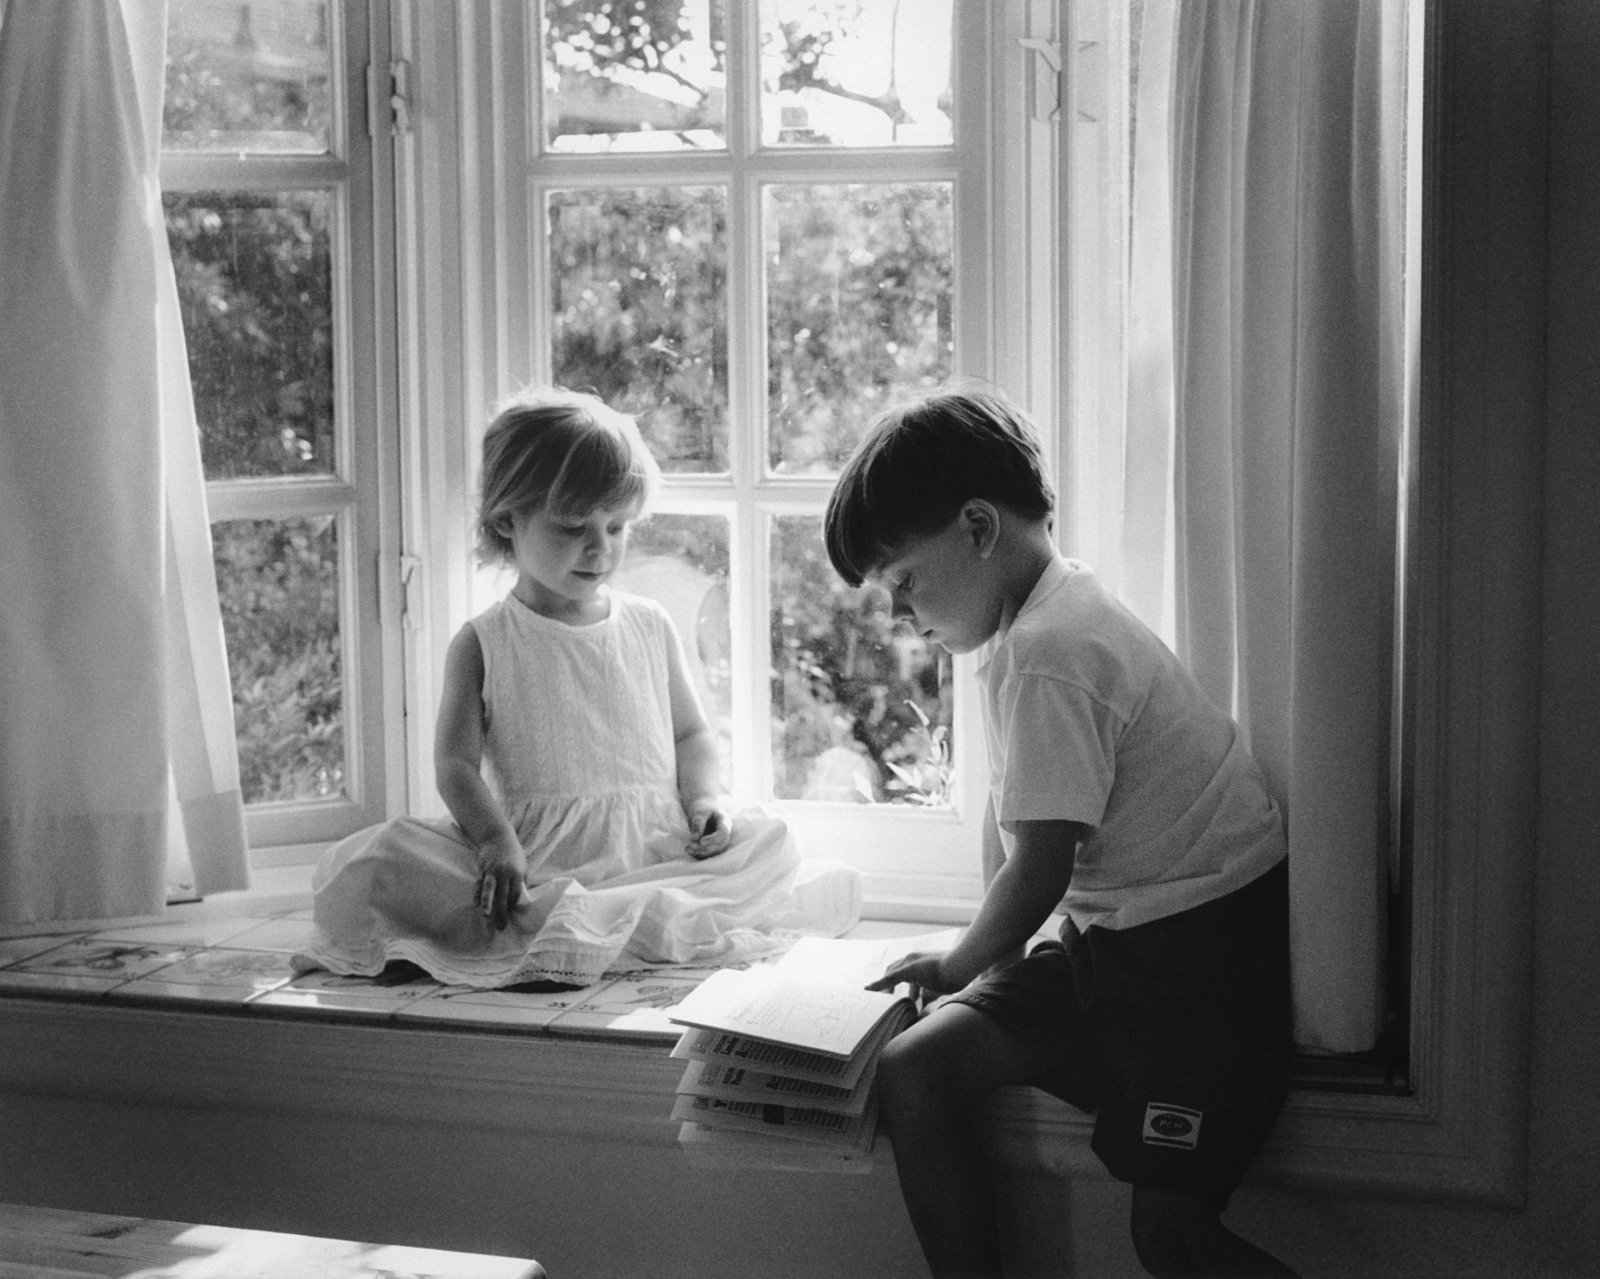 Ben & Emma on Window Seat